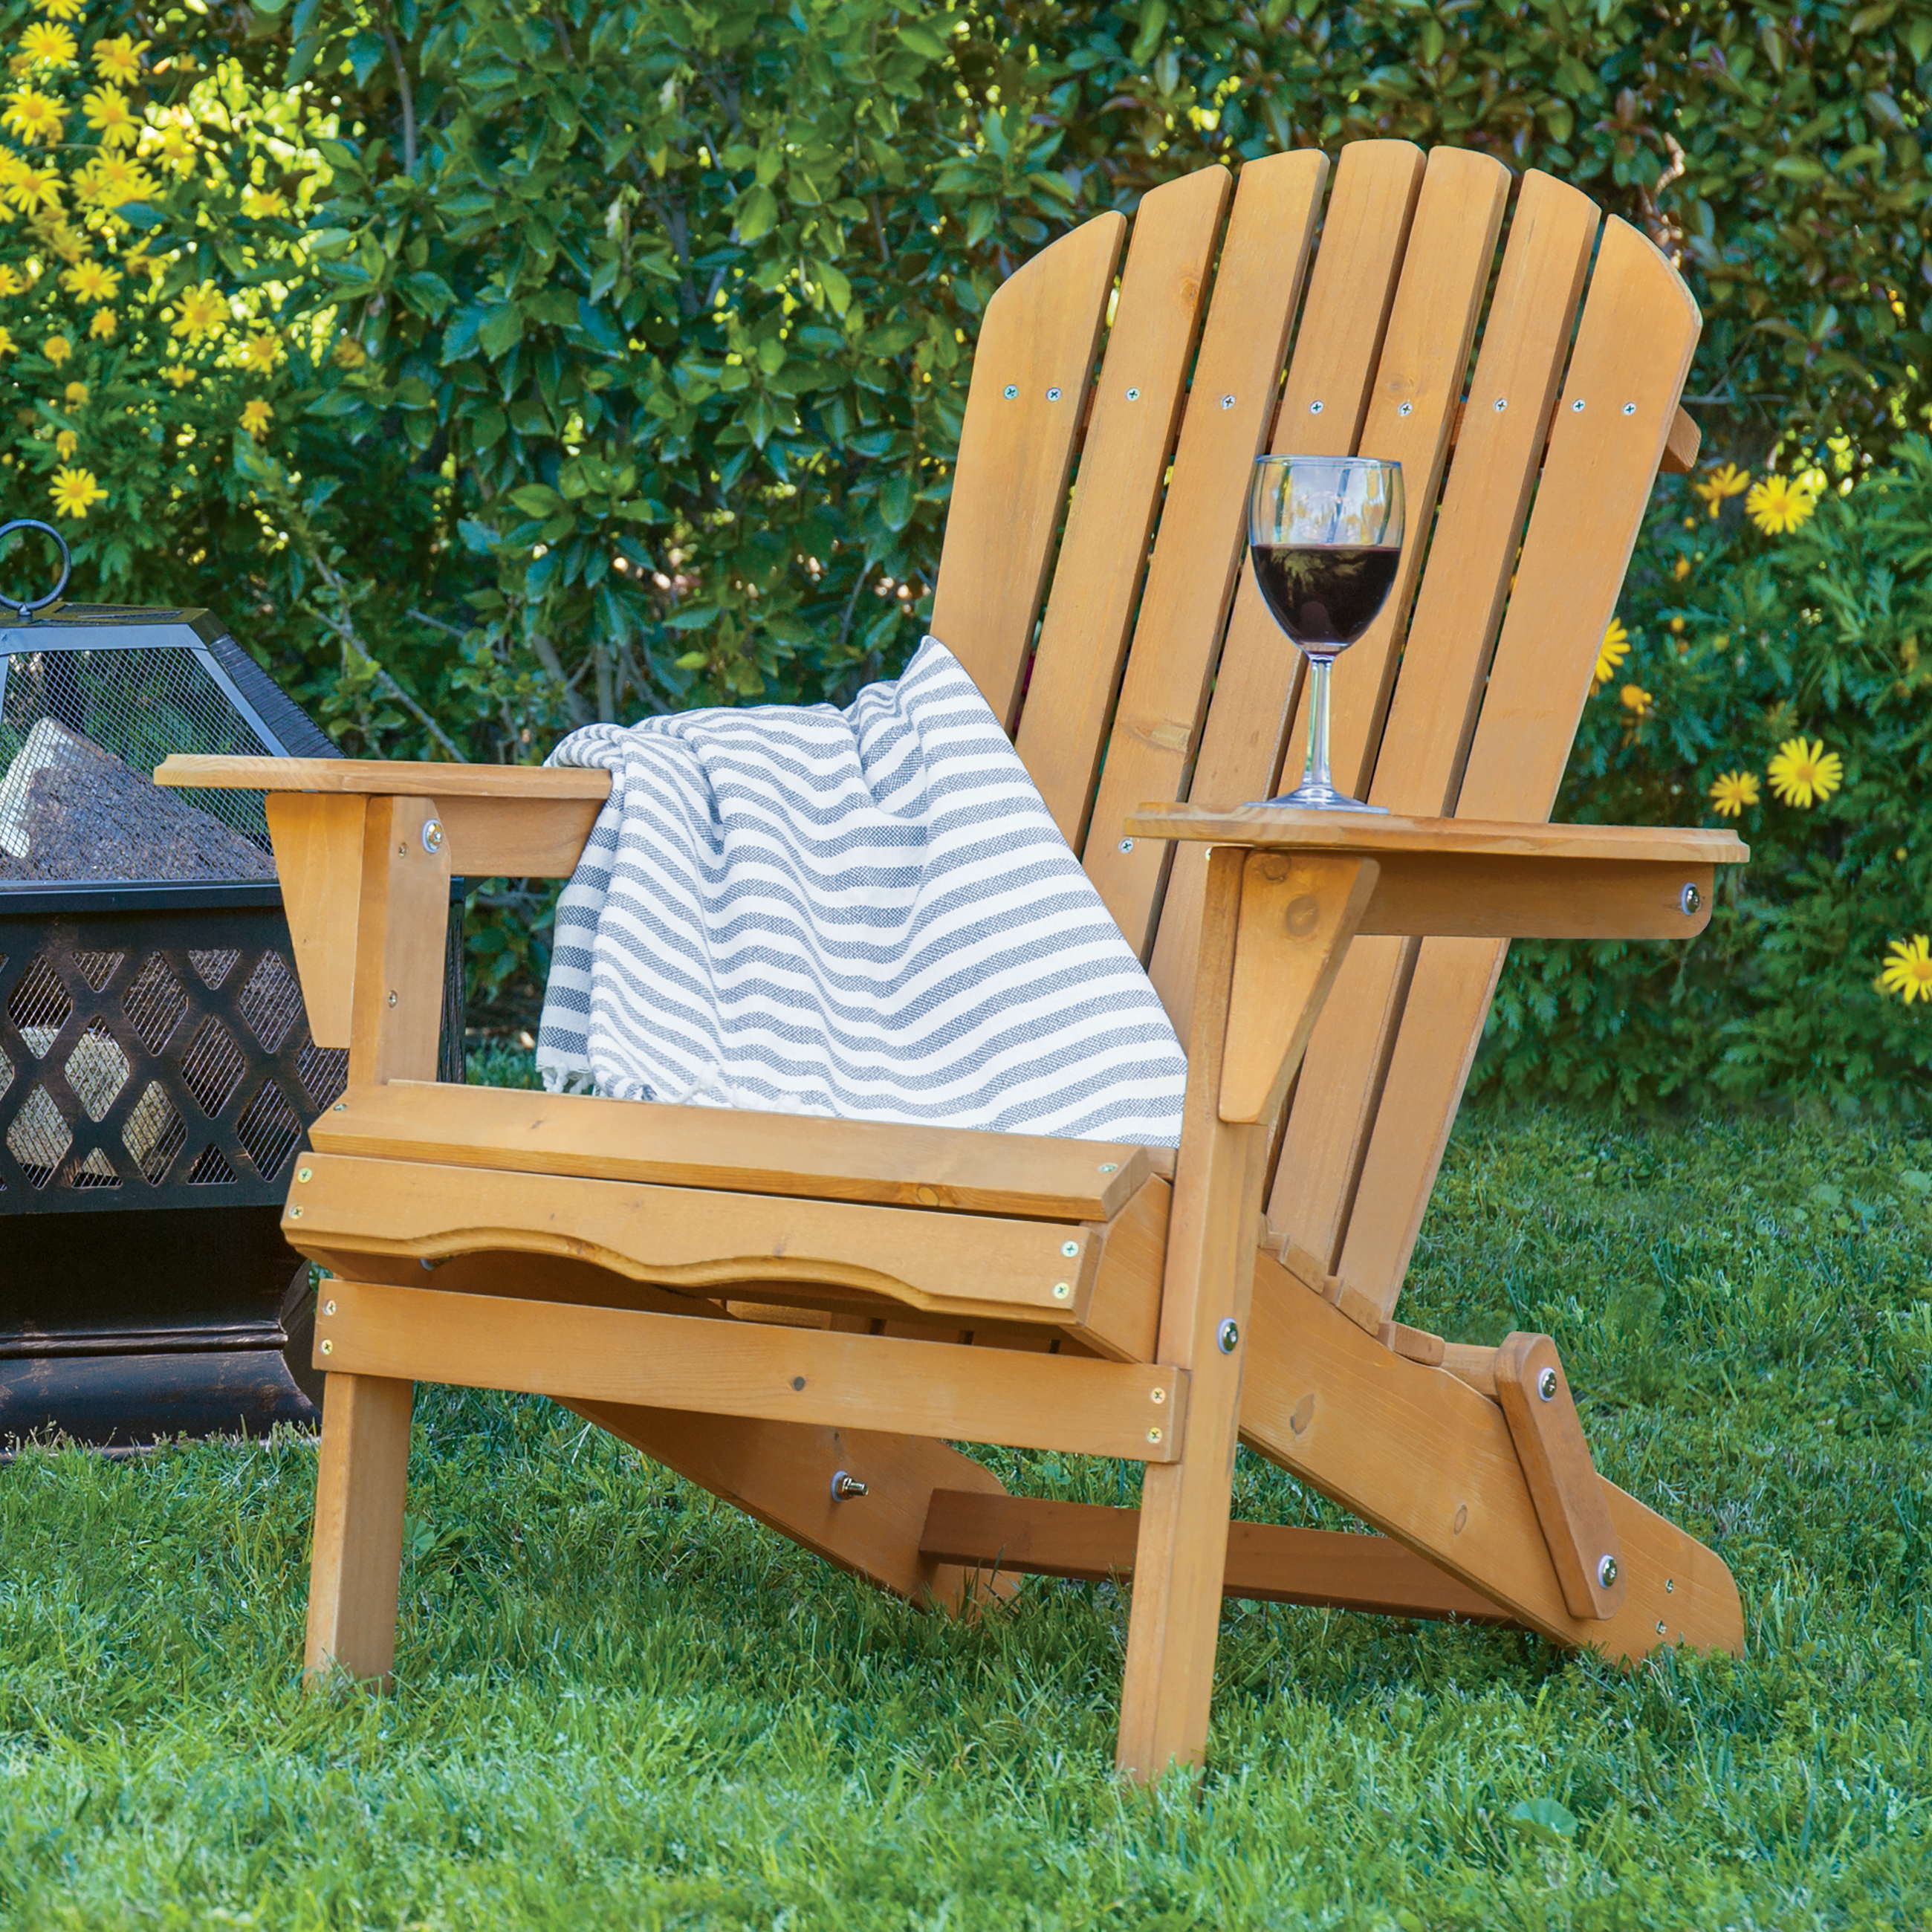 Adirondack Chairs. Best Choice Products Outdoor Adirondack Wood Chair  Foldable Patio Lawn Deck Garden Furniture